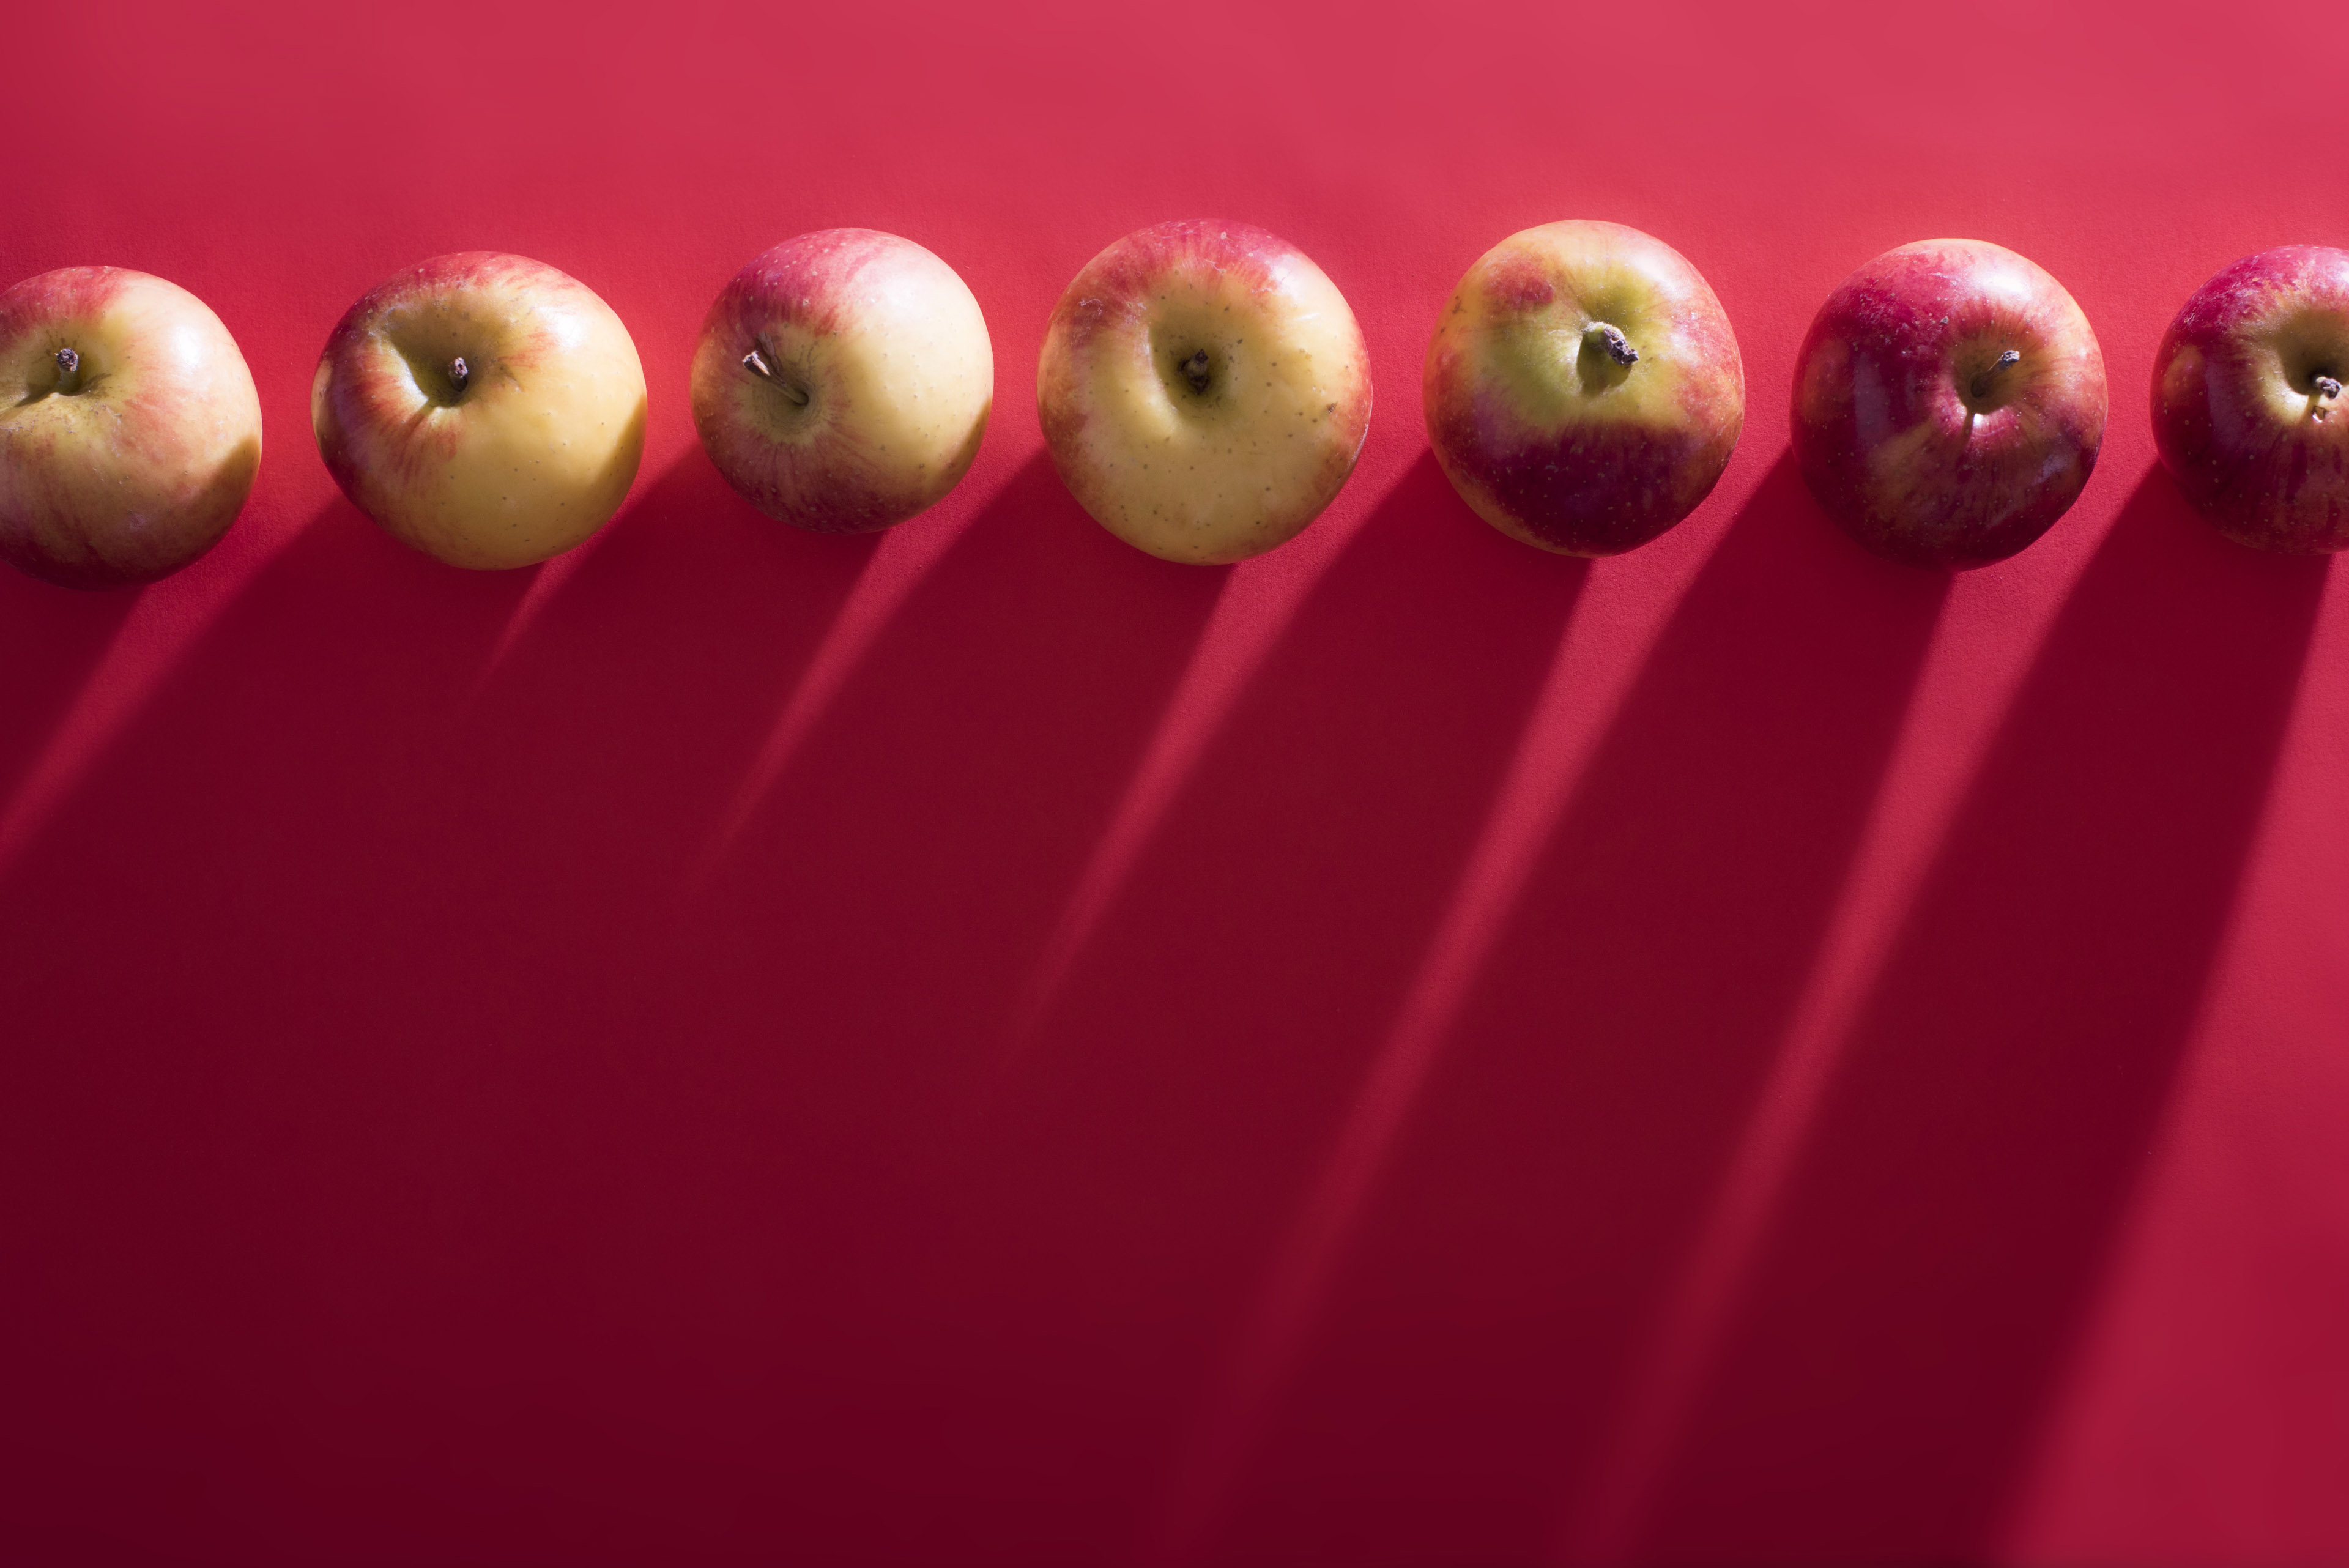 Fresh apples arranged in row on red background with copyspace